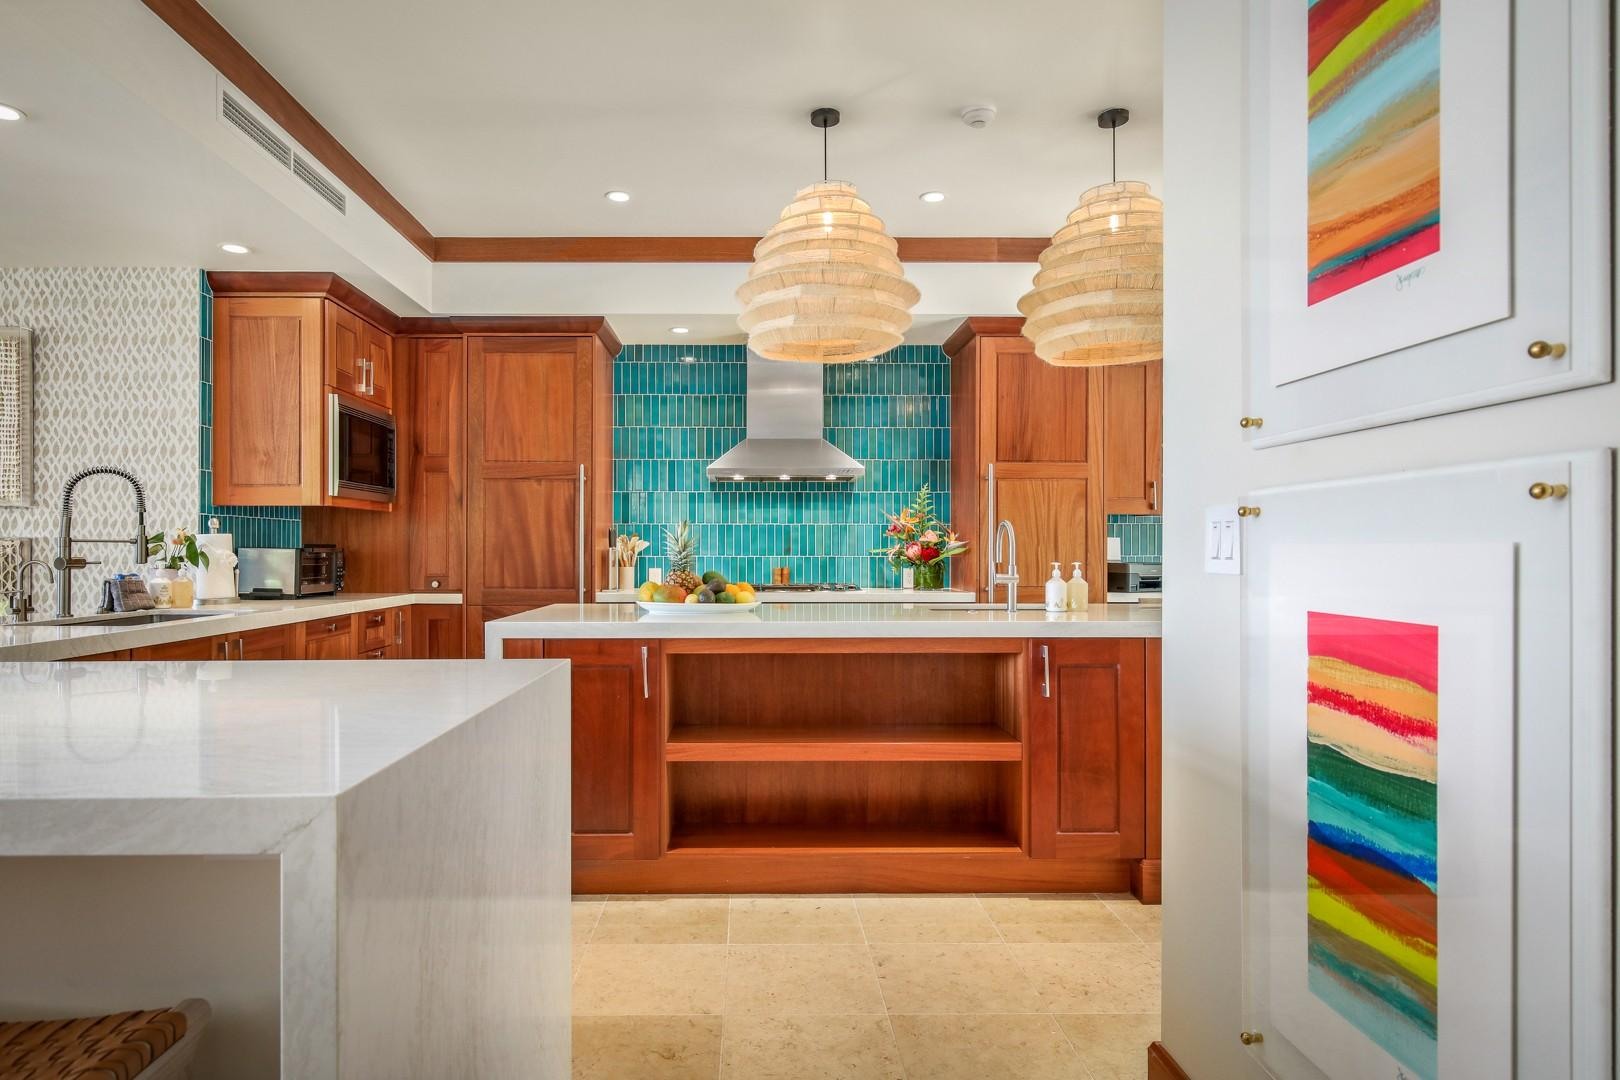 Dual ocean view sinks and ample counter prep space - a chef's (or enthusiast's) dream!